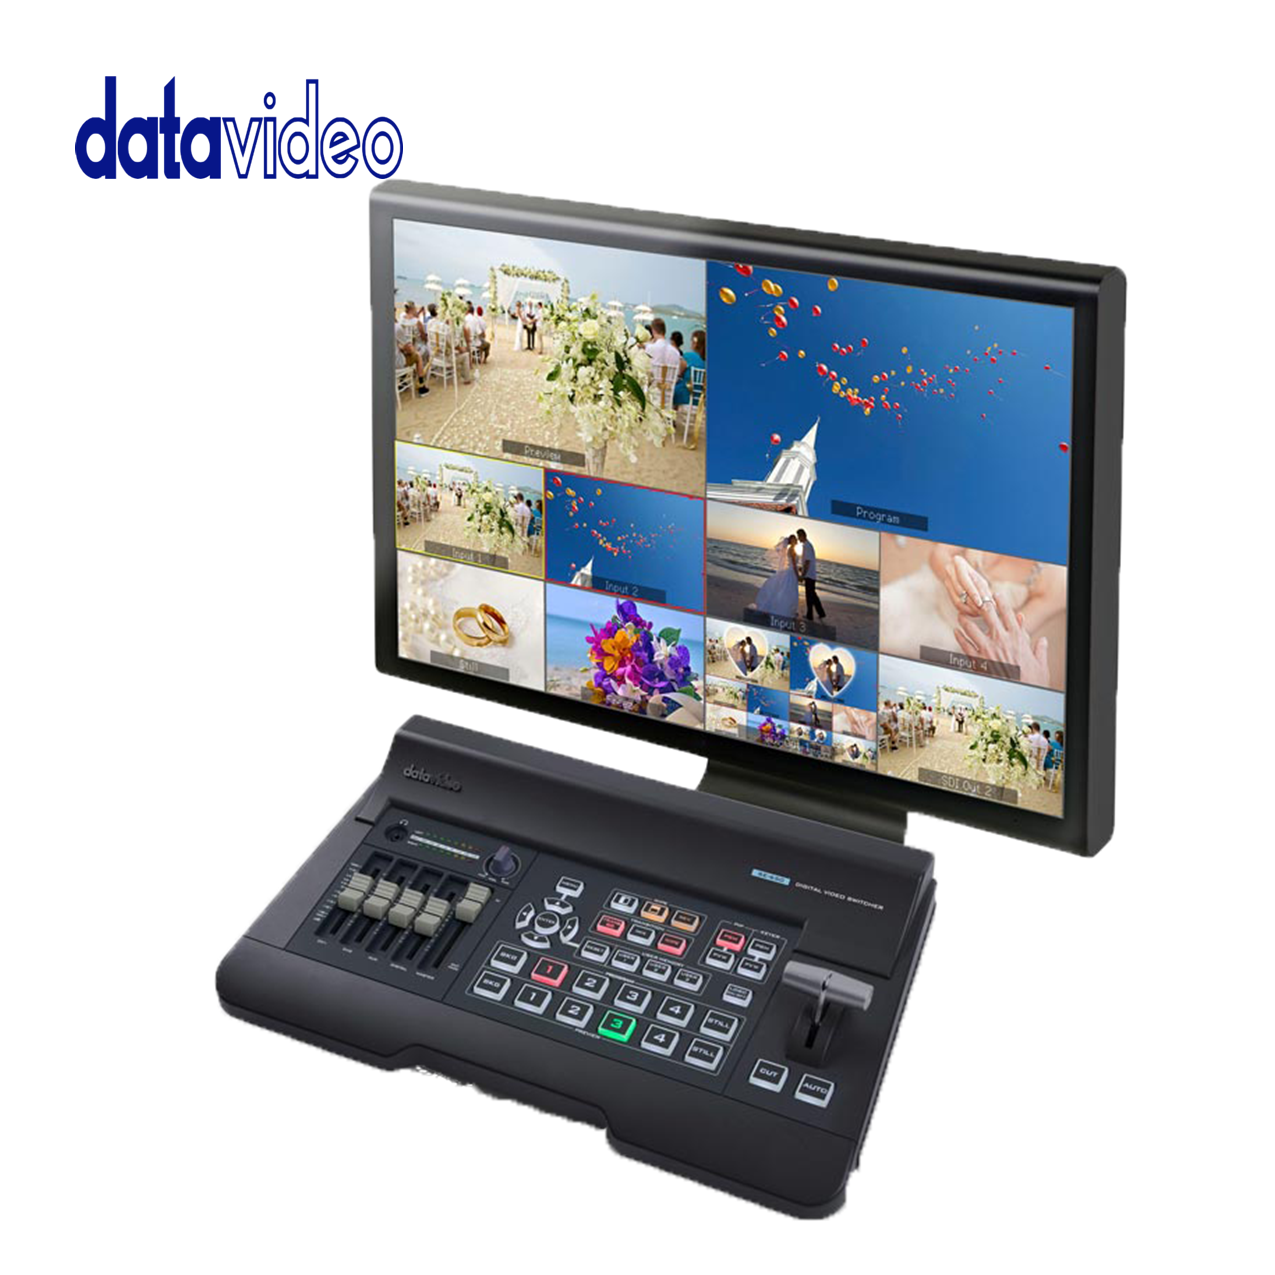 Data Video SE-650 4 Input HD Digital Video Switcher Pro Video Data Video